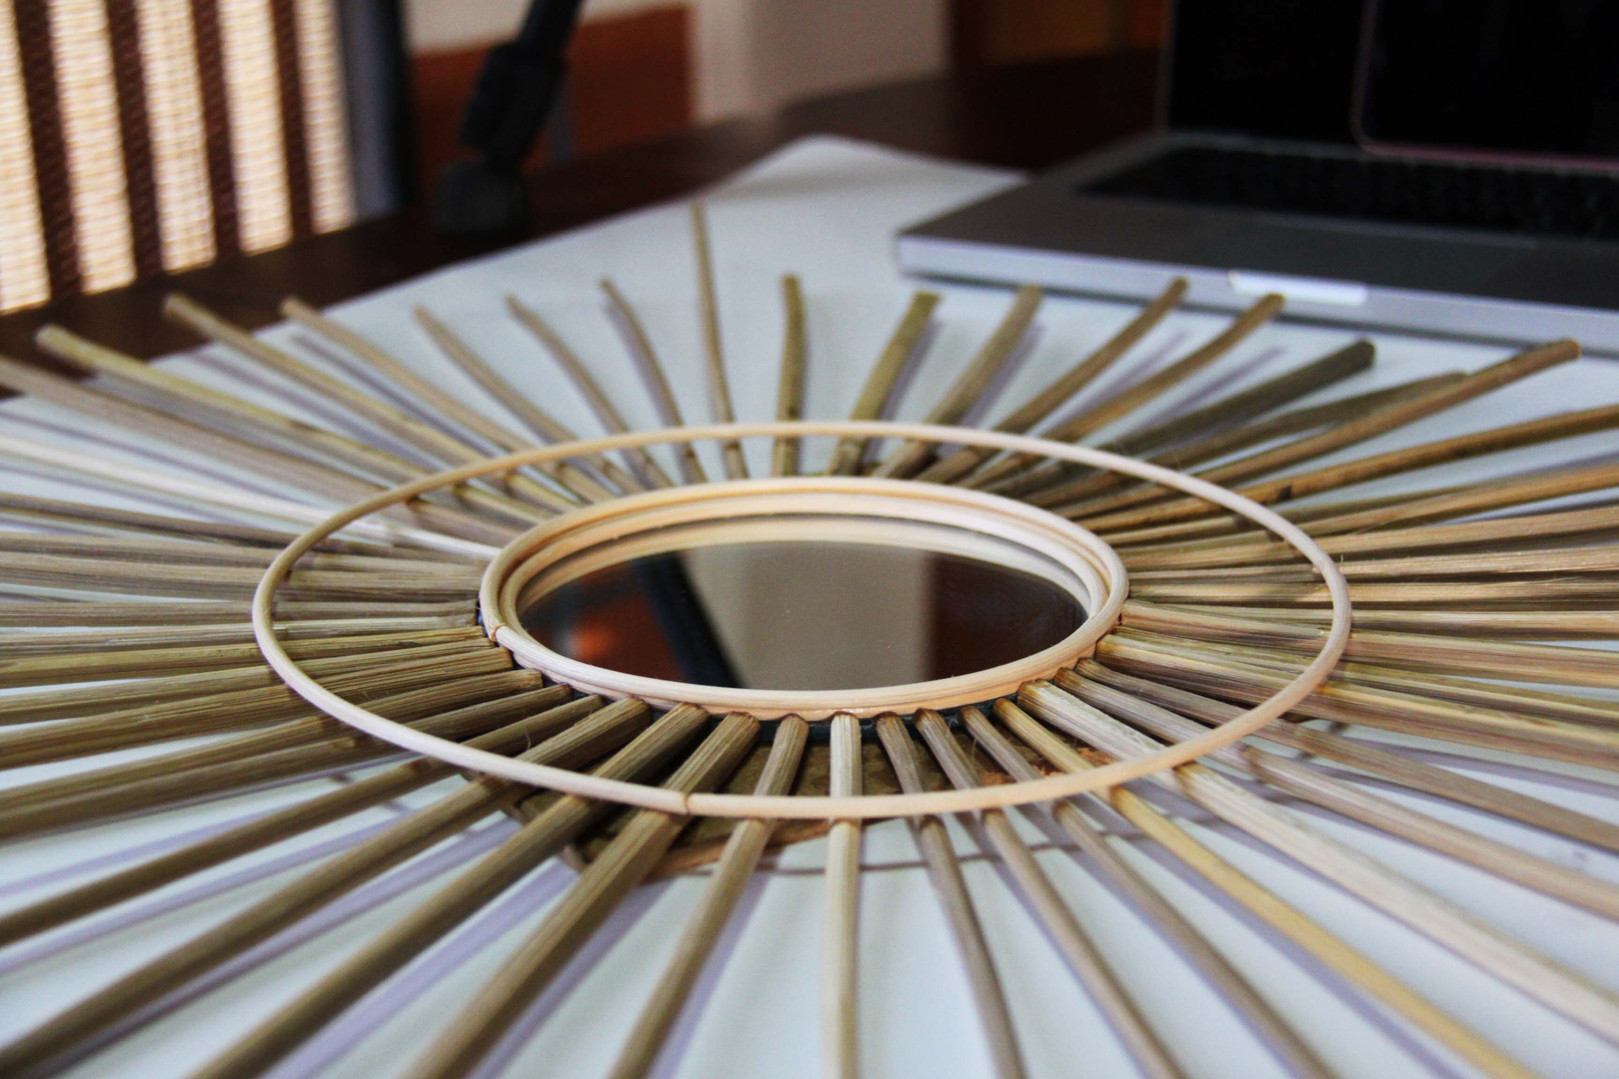 Bamboo and Cane Mirror Workshop